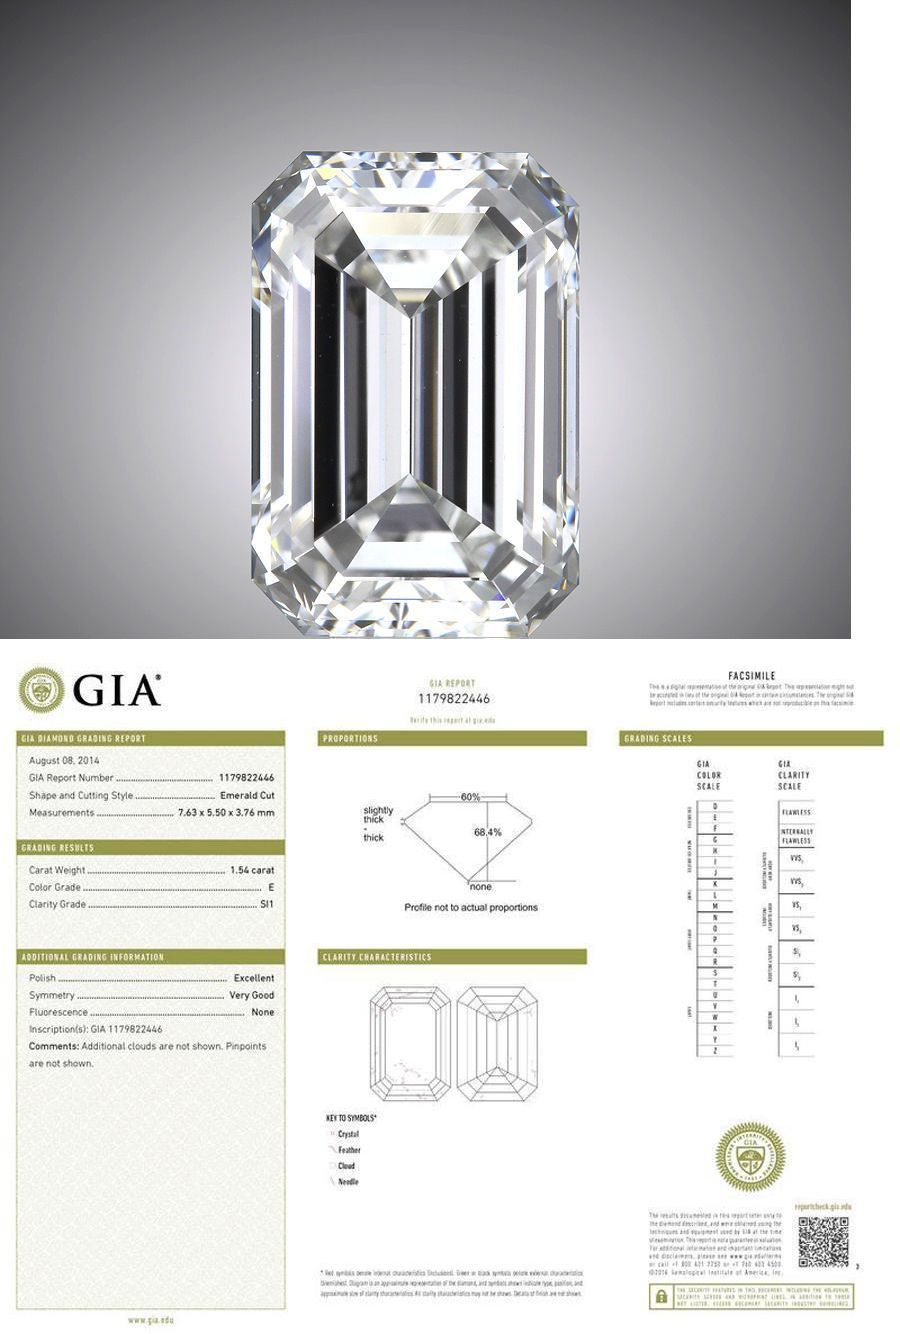 zoara from decent diamond a ring triple gia my another engagement experience excellent grade e